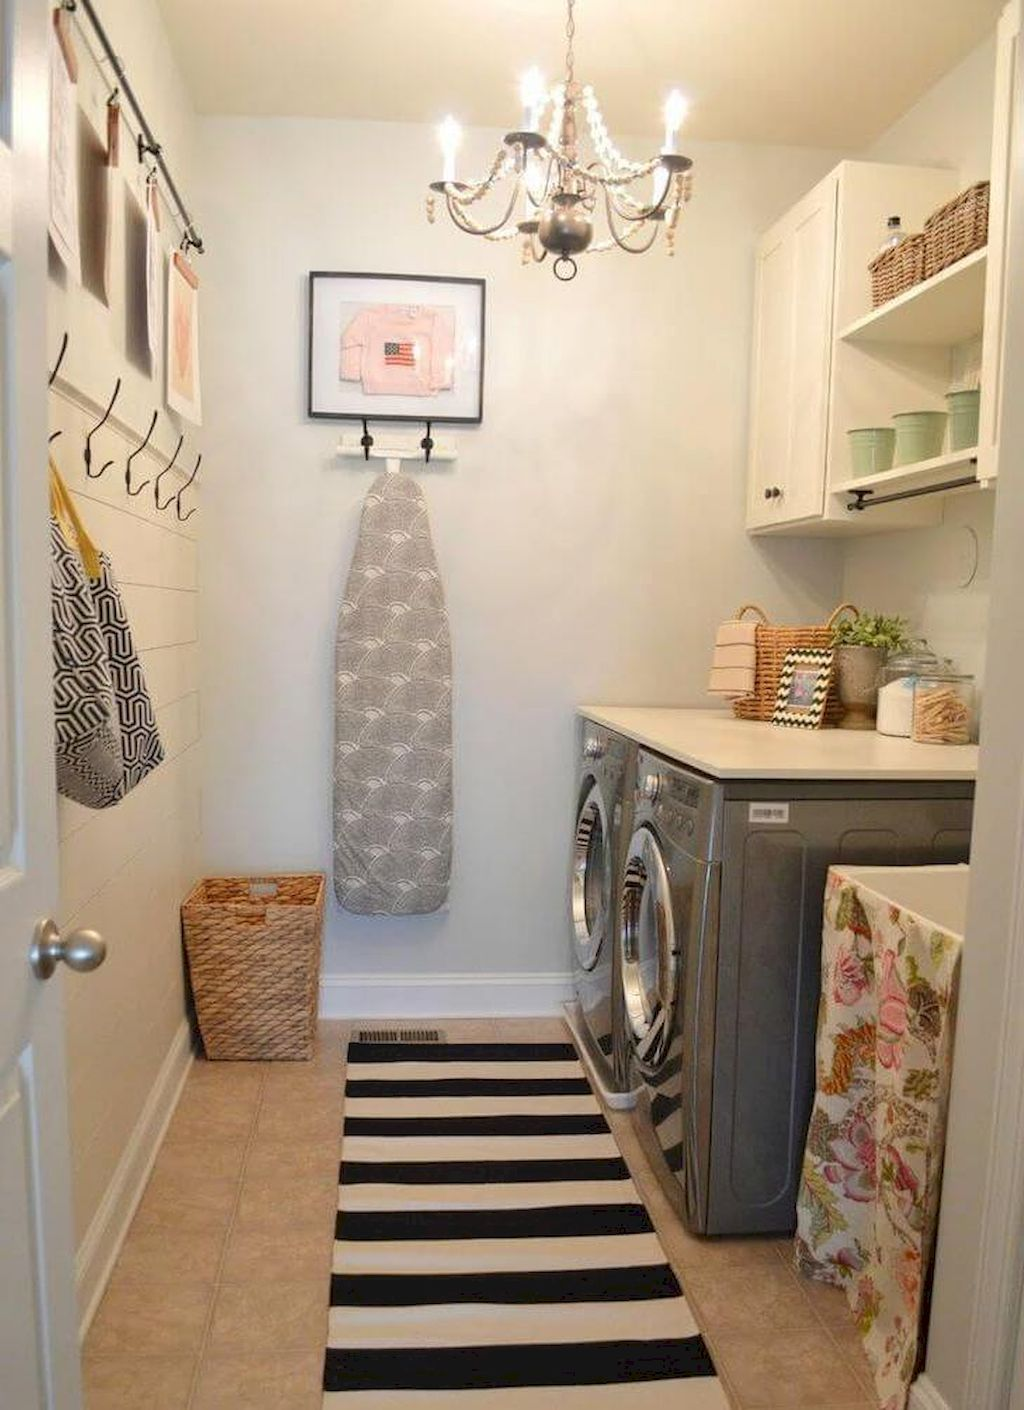 50 amazing vintage laundry rooms that will make you want to clean